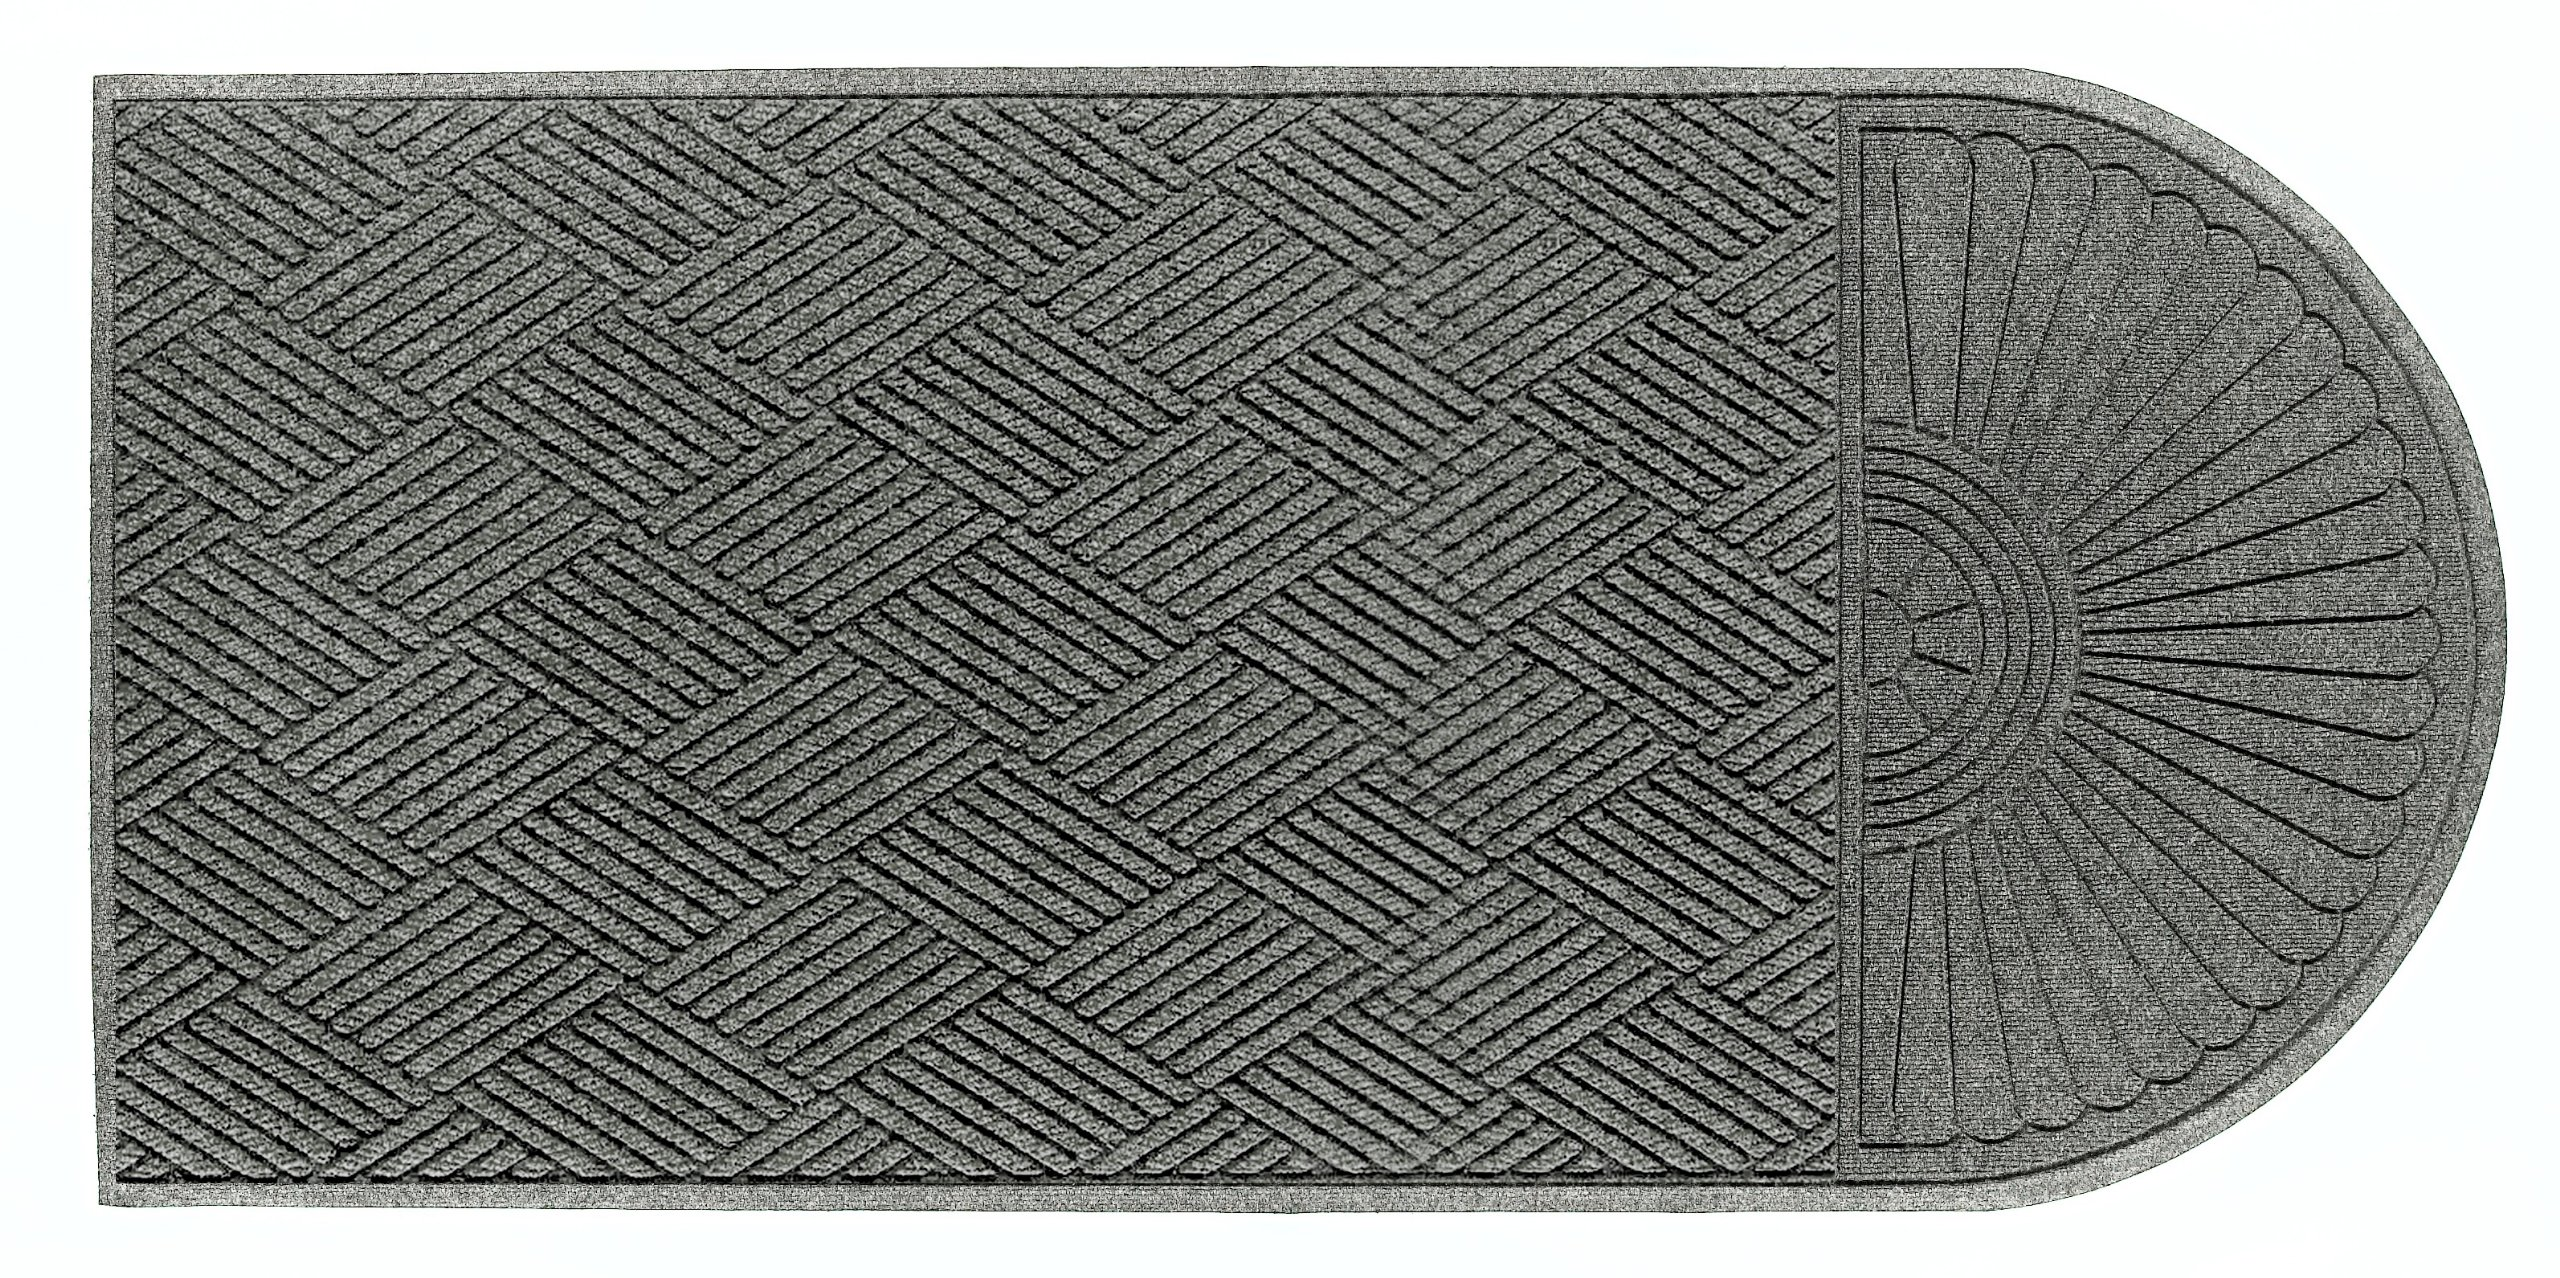 Andersen 273 Waterhog Grand Classic Polypropylene Fiber Single End Entrance Indoor/Outdoor Floor Mat, SBR Rubber Backing, 5.9' Length x 4' Width, 3/8'' Thick, Medium Grey